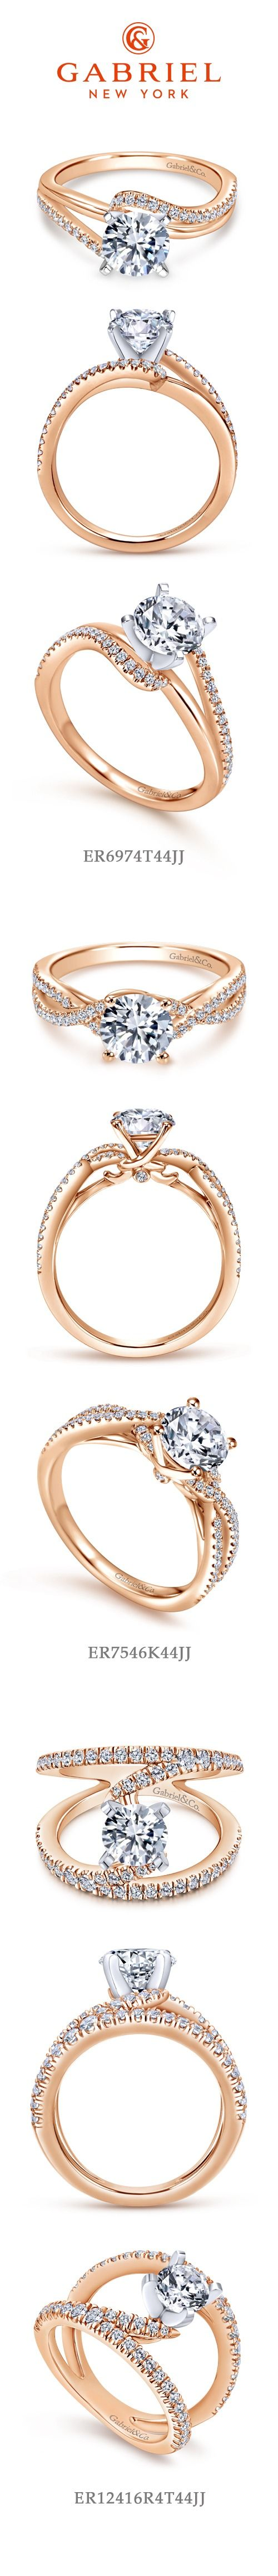 273 best Rose & Yellow Gold images on Pinterest